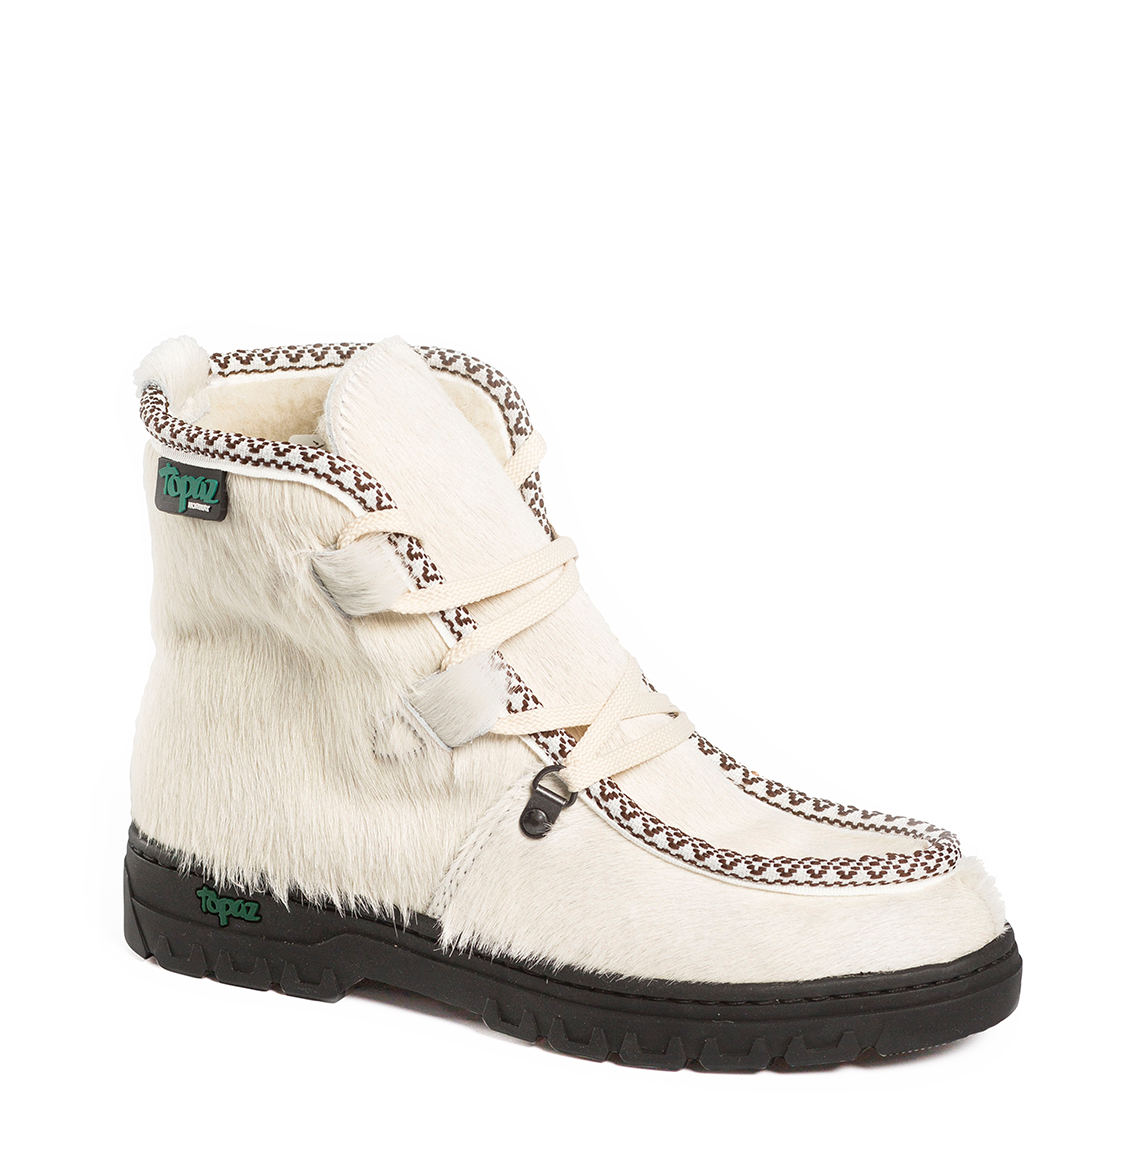 topaz 65 by oslo white - Topaz of Norway - Winter boots